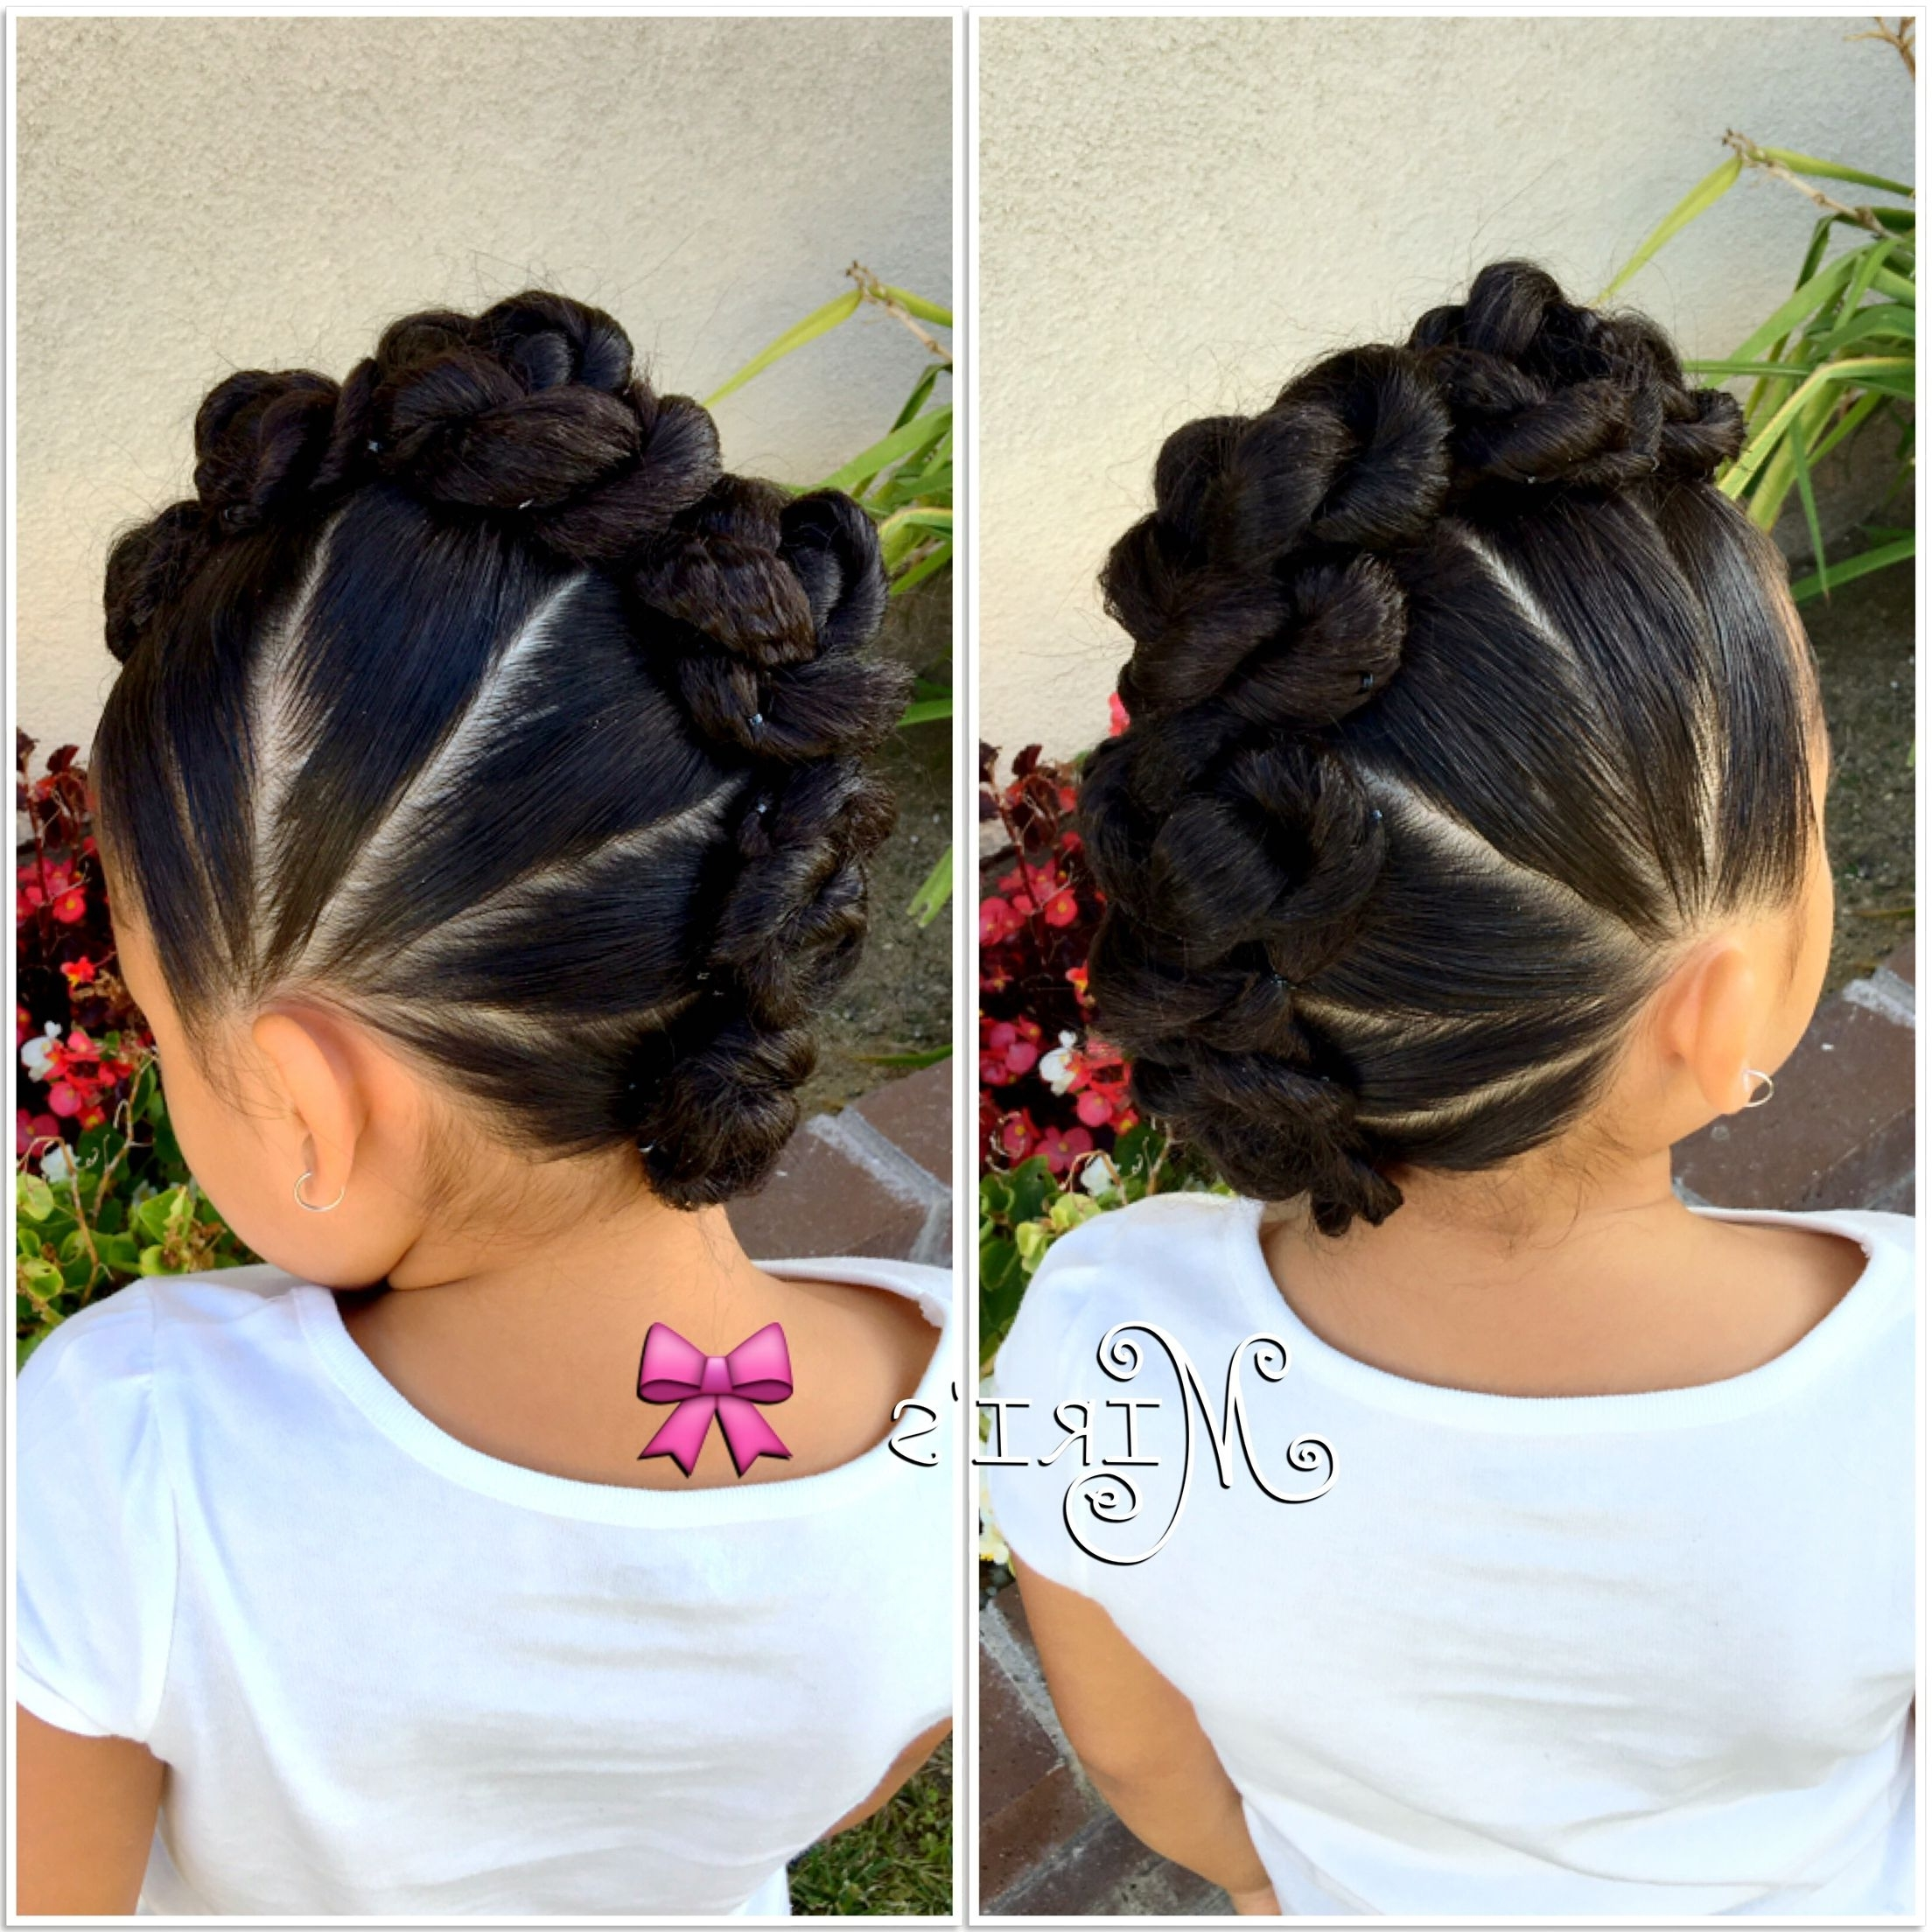 Mohawk With Twists Hair Style For Little Girls (View 10 of 15)